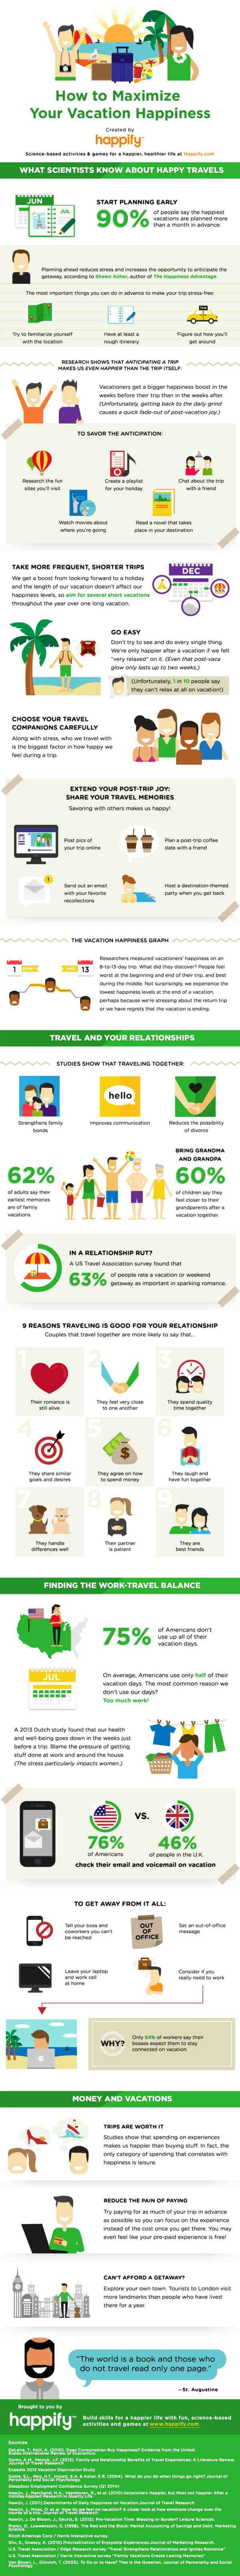 How to Happify Your Vacation